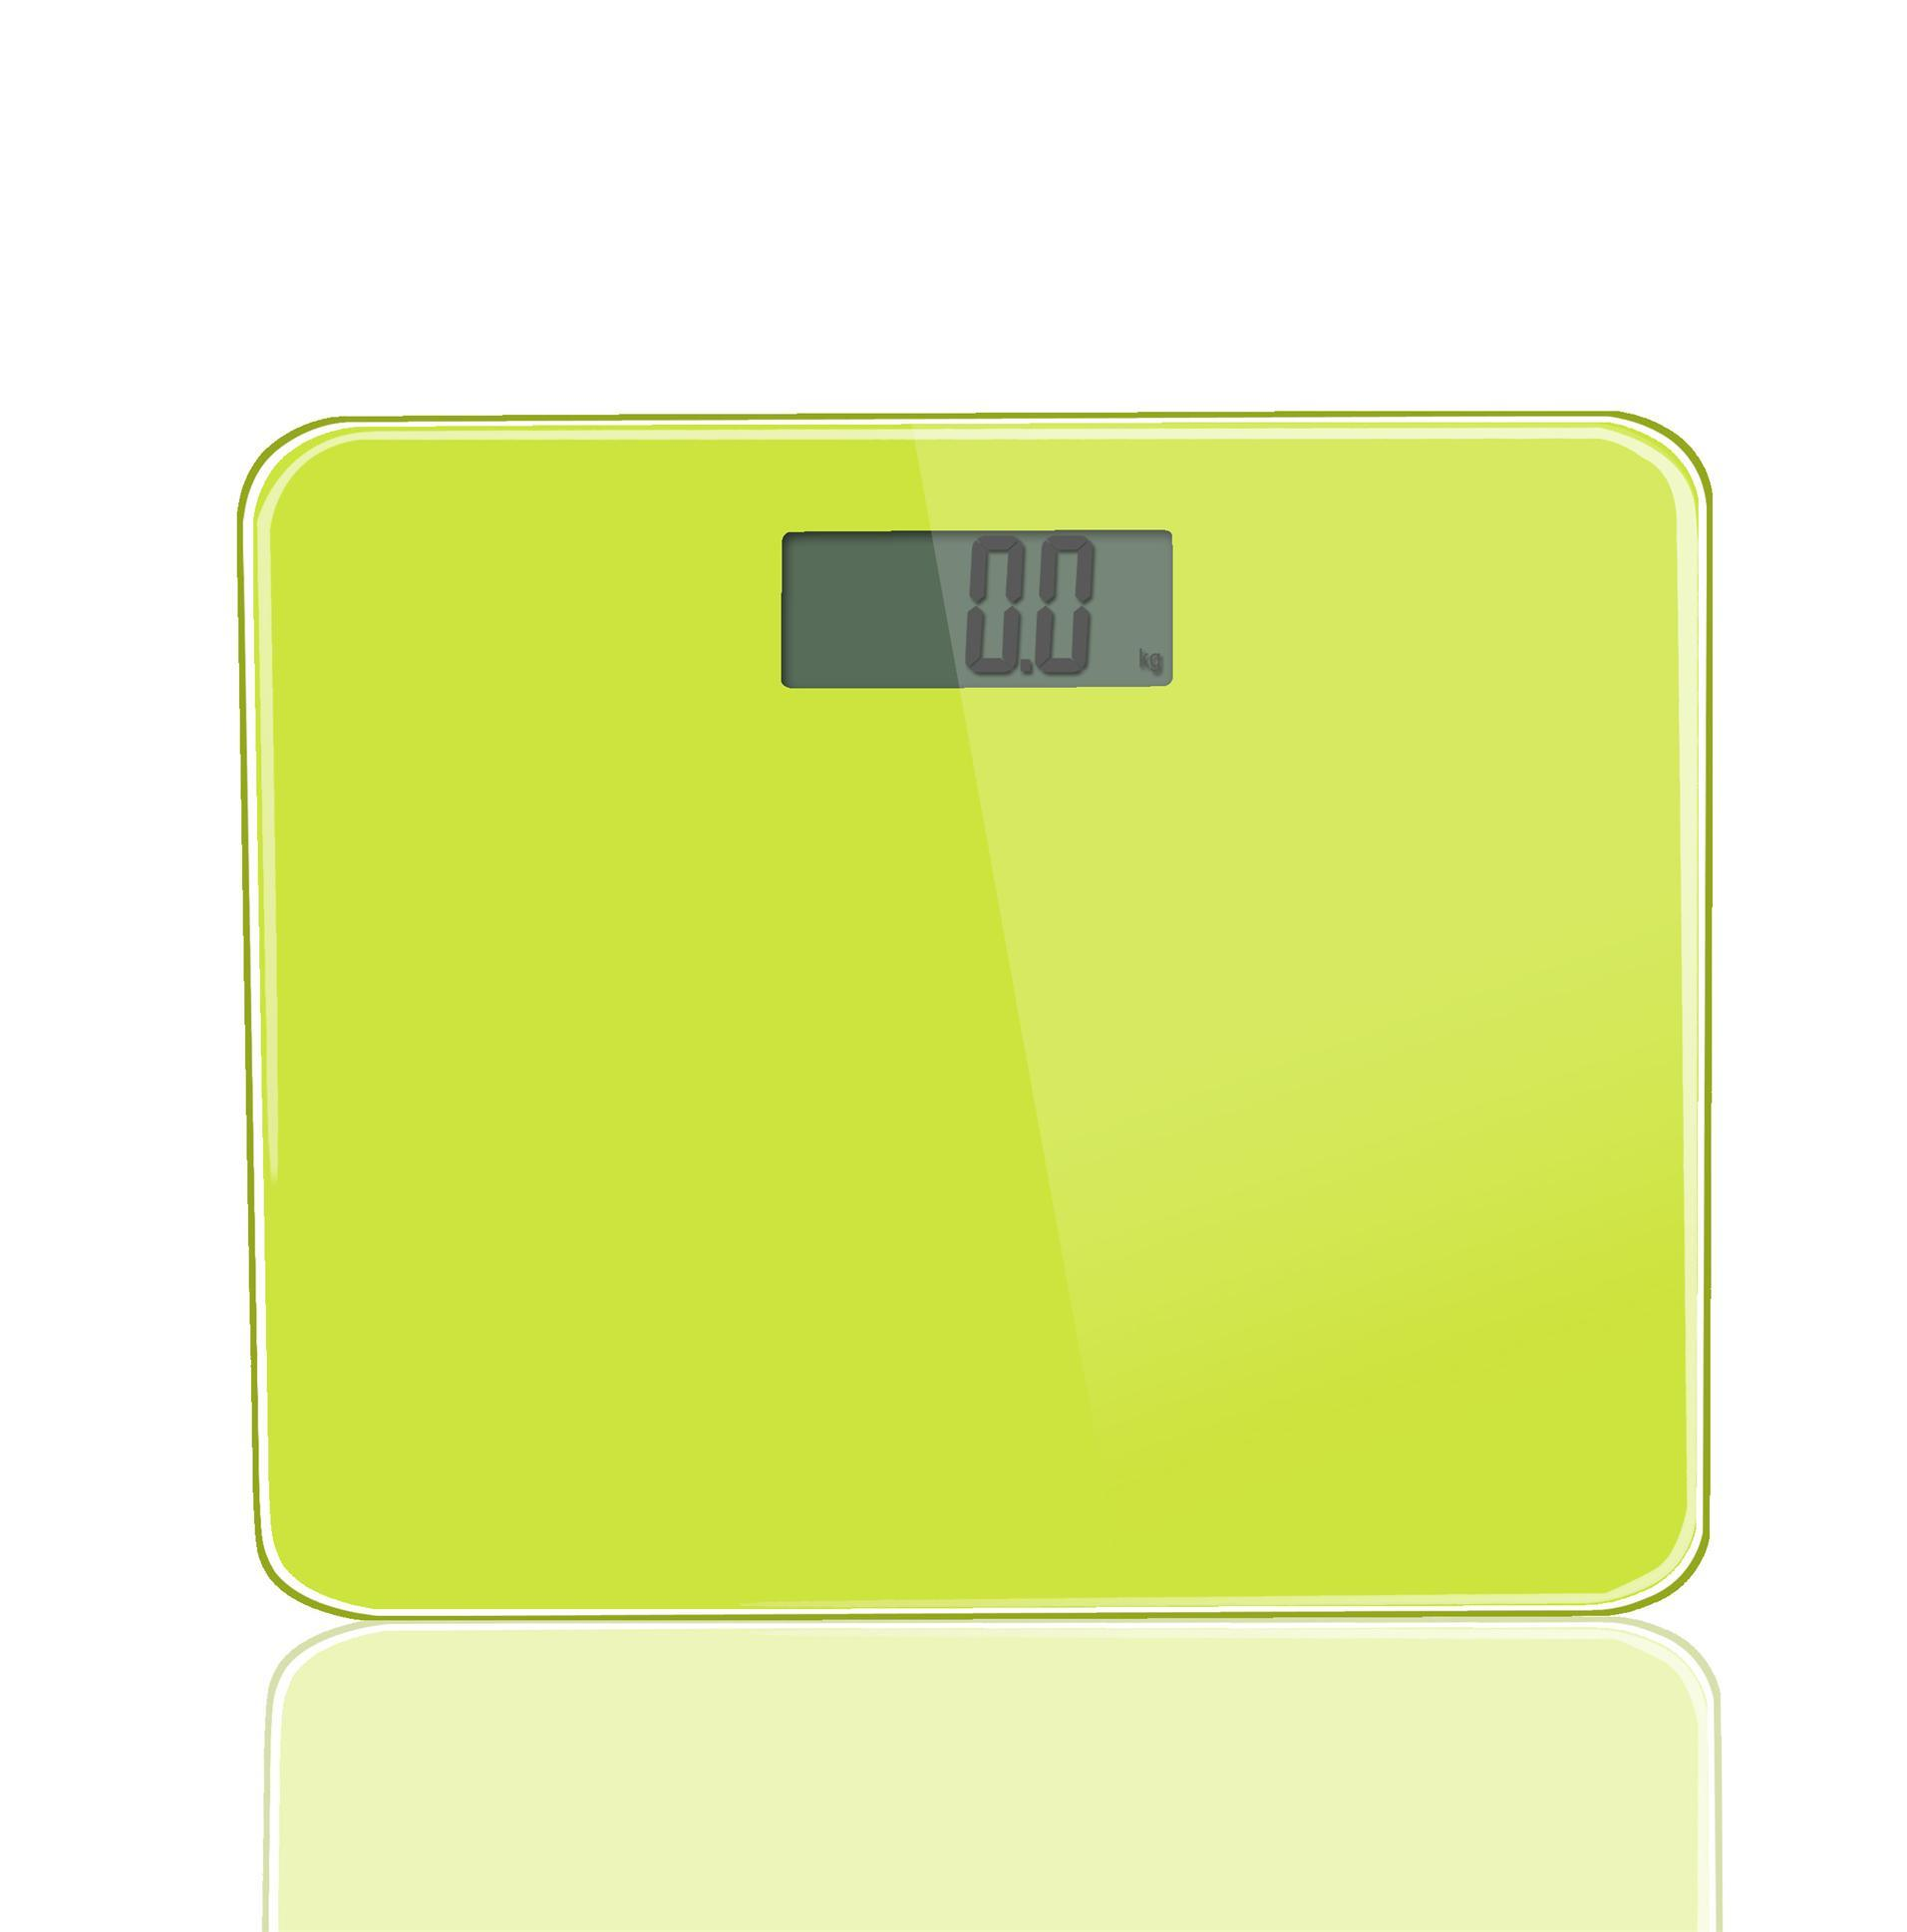 Thinner bathroom scale